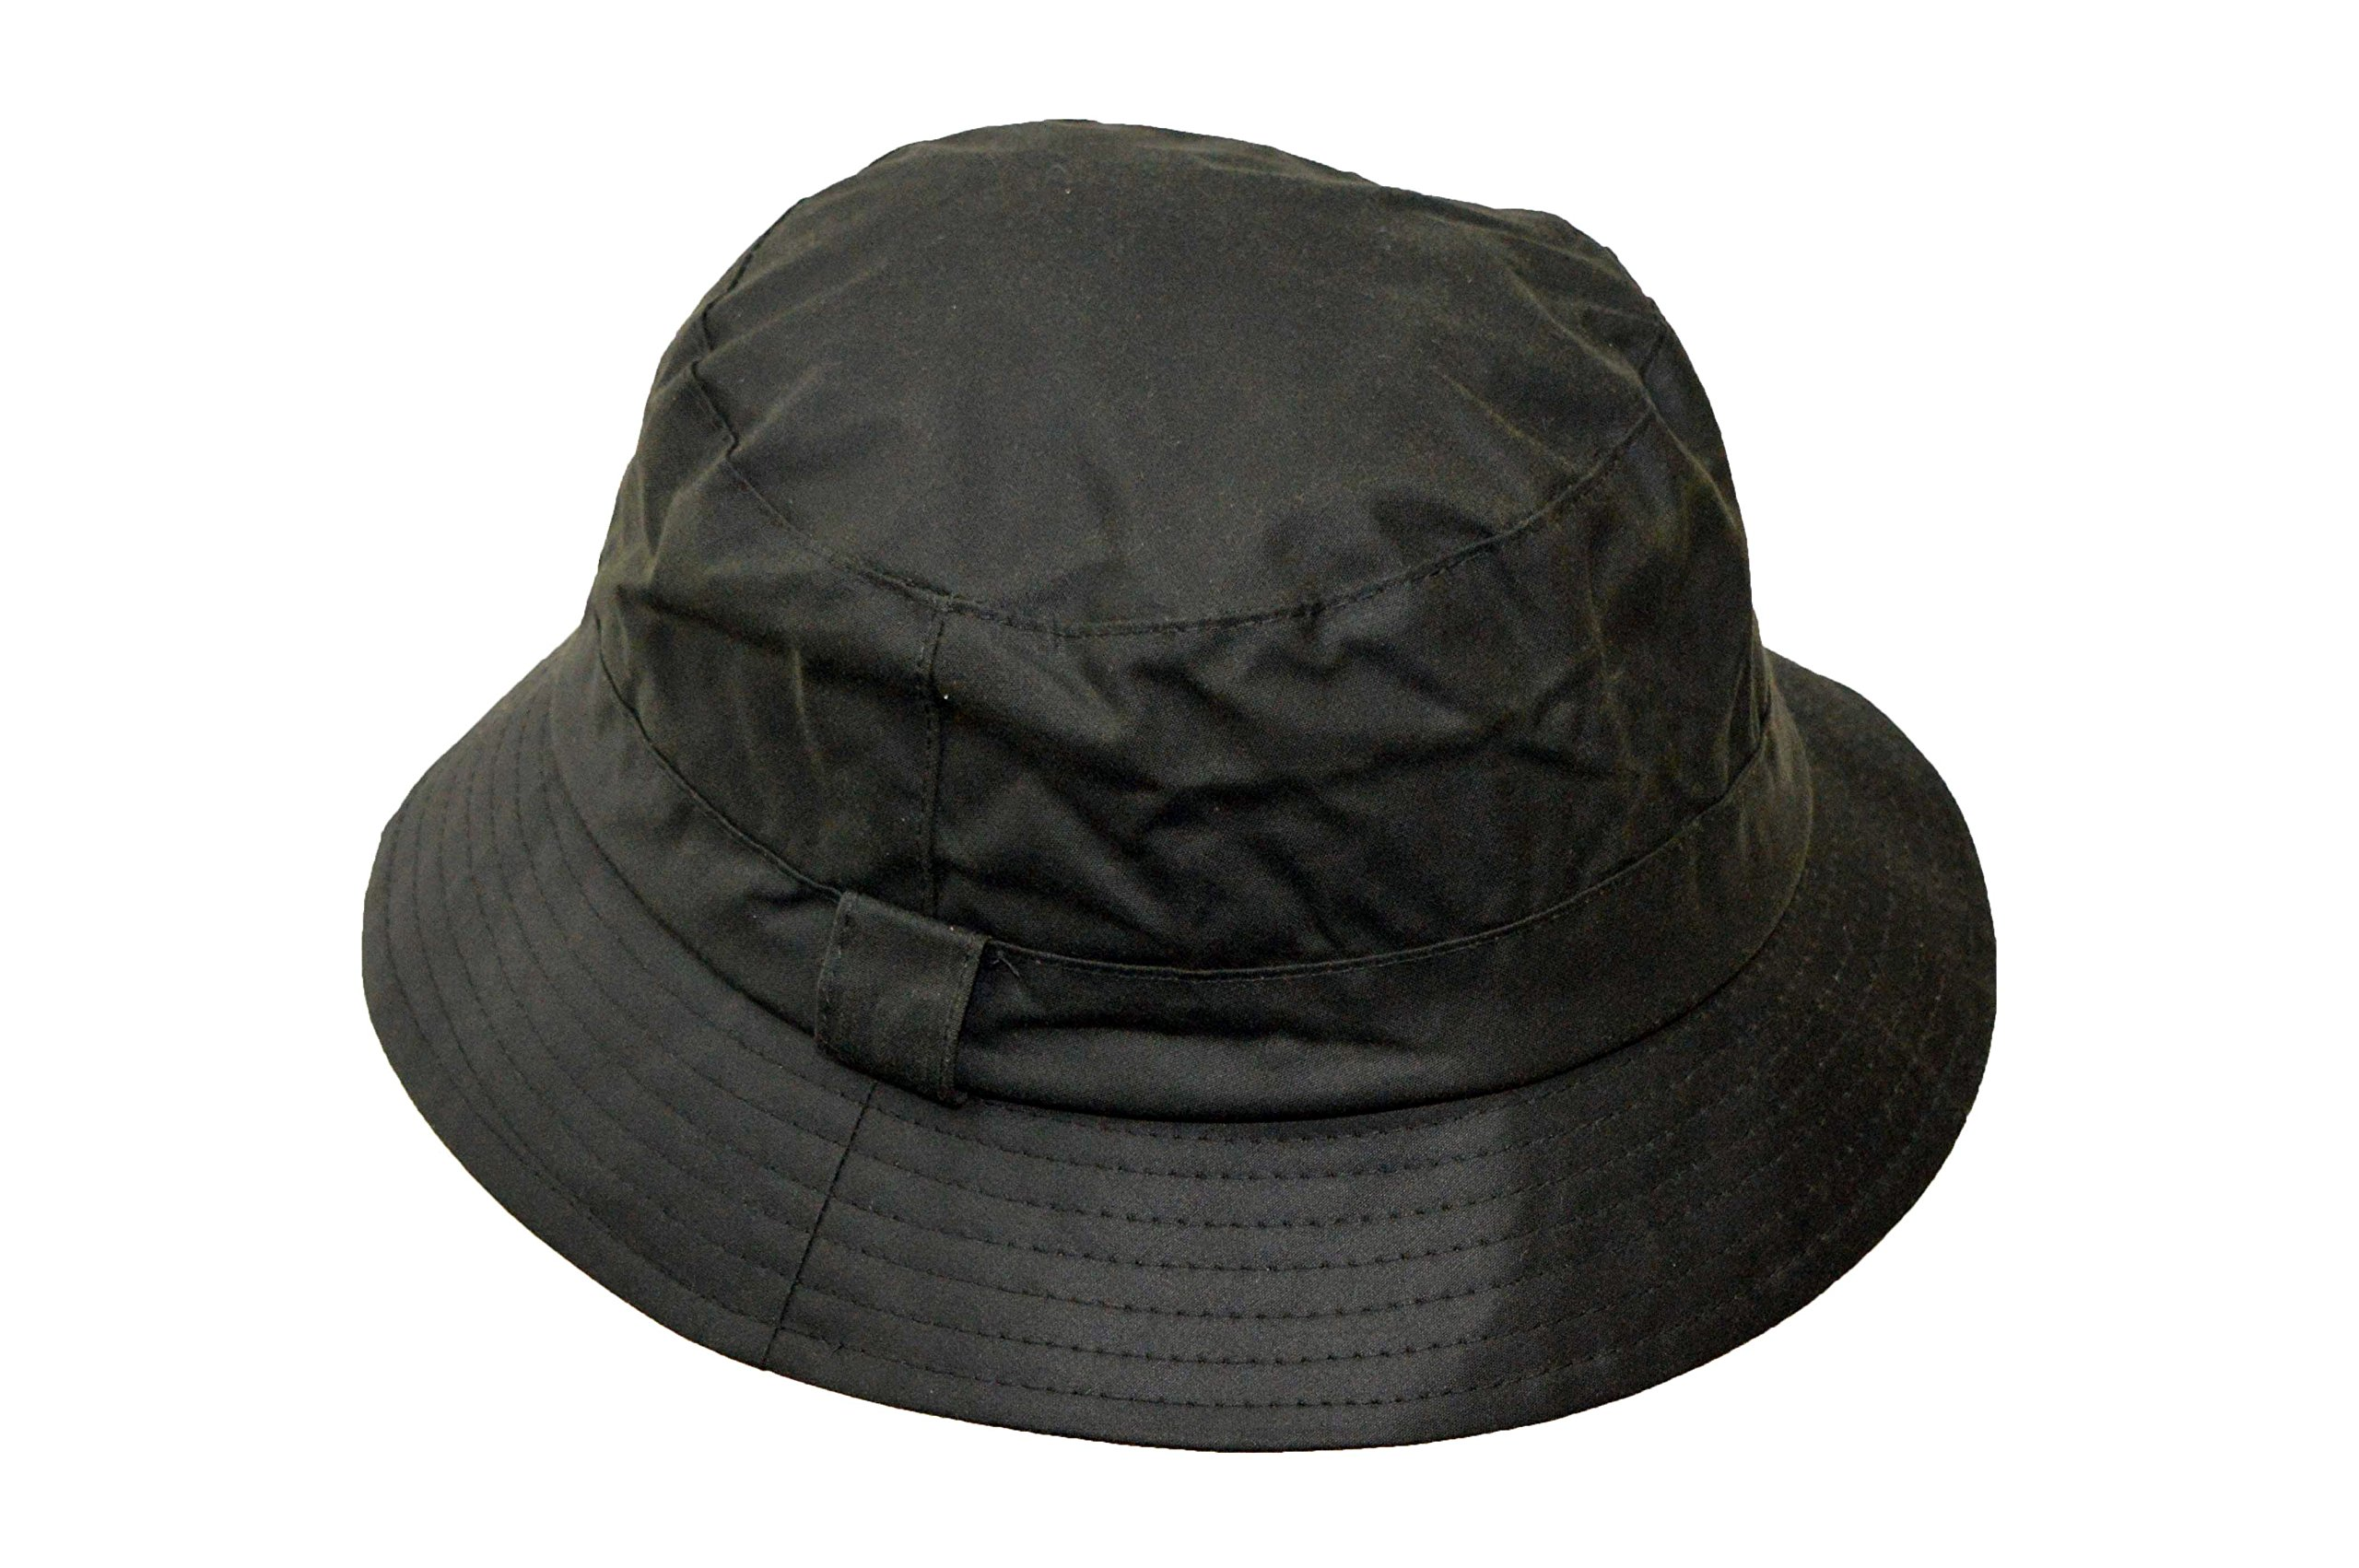 69b94e4f8802b Walker   Hawkes - Uni-Sex Wax Bush Bucket Fishing Country Hat - Olive  product